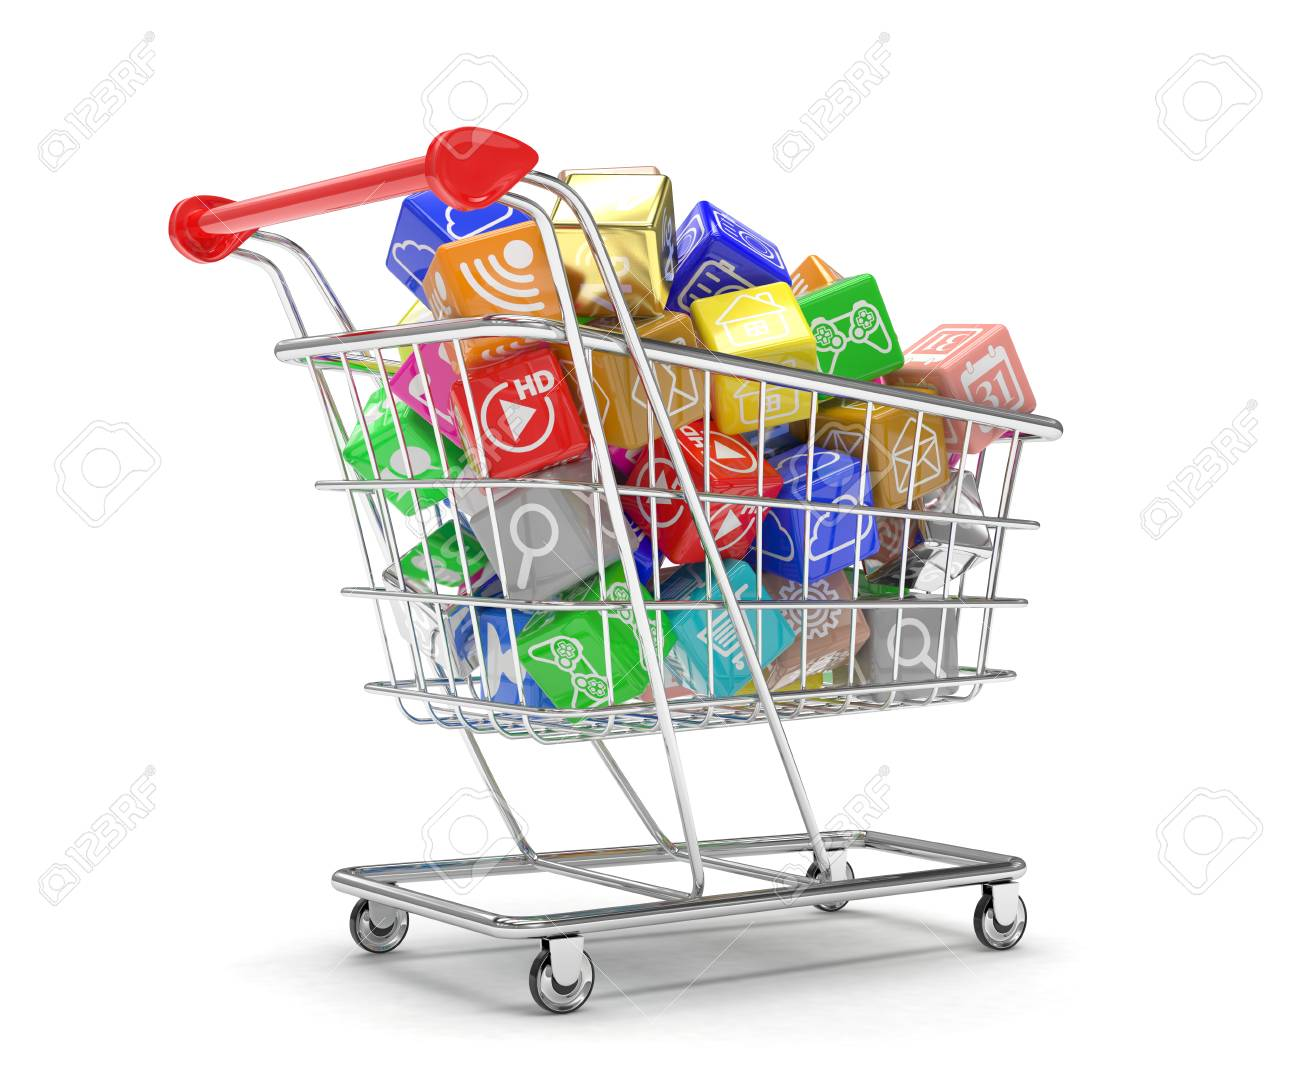 shopping cart with application software icons isolated on a white